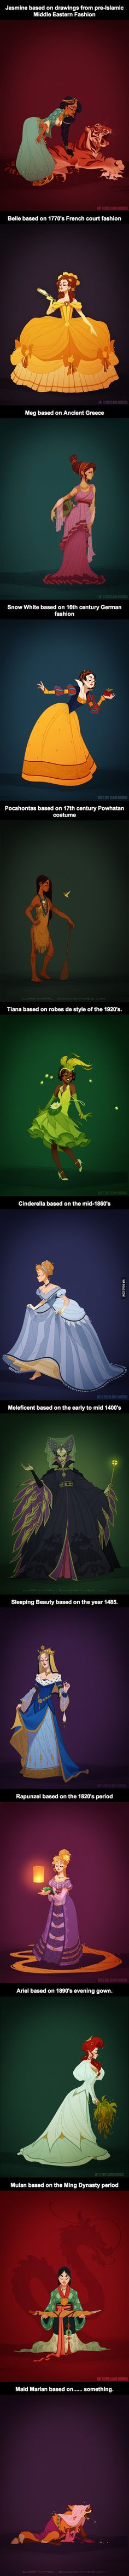 Disney Princesses Based on Historical Period Fashion. Oh gosh, the last one... I'm dying.